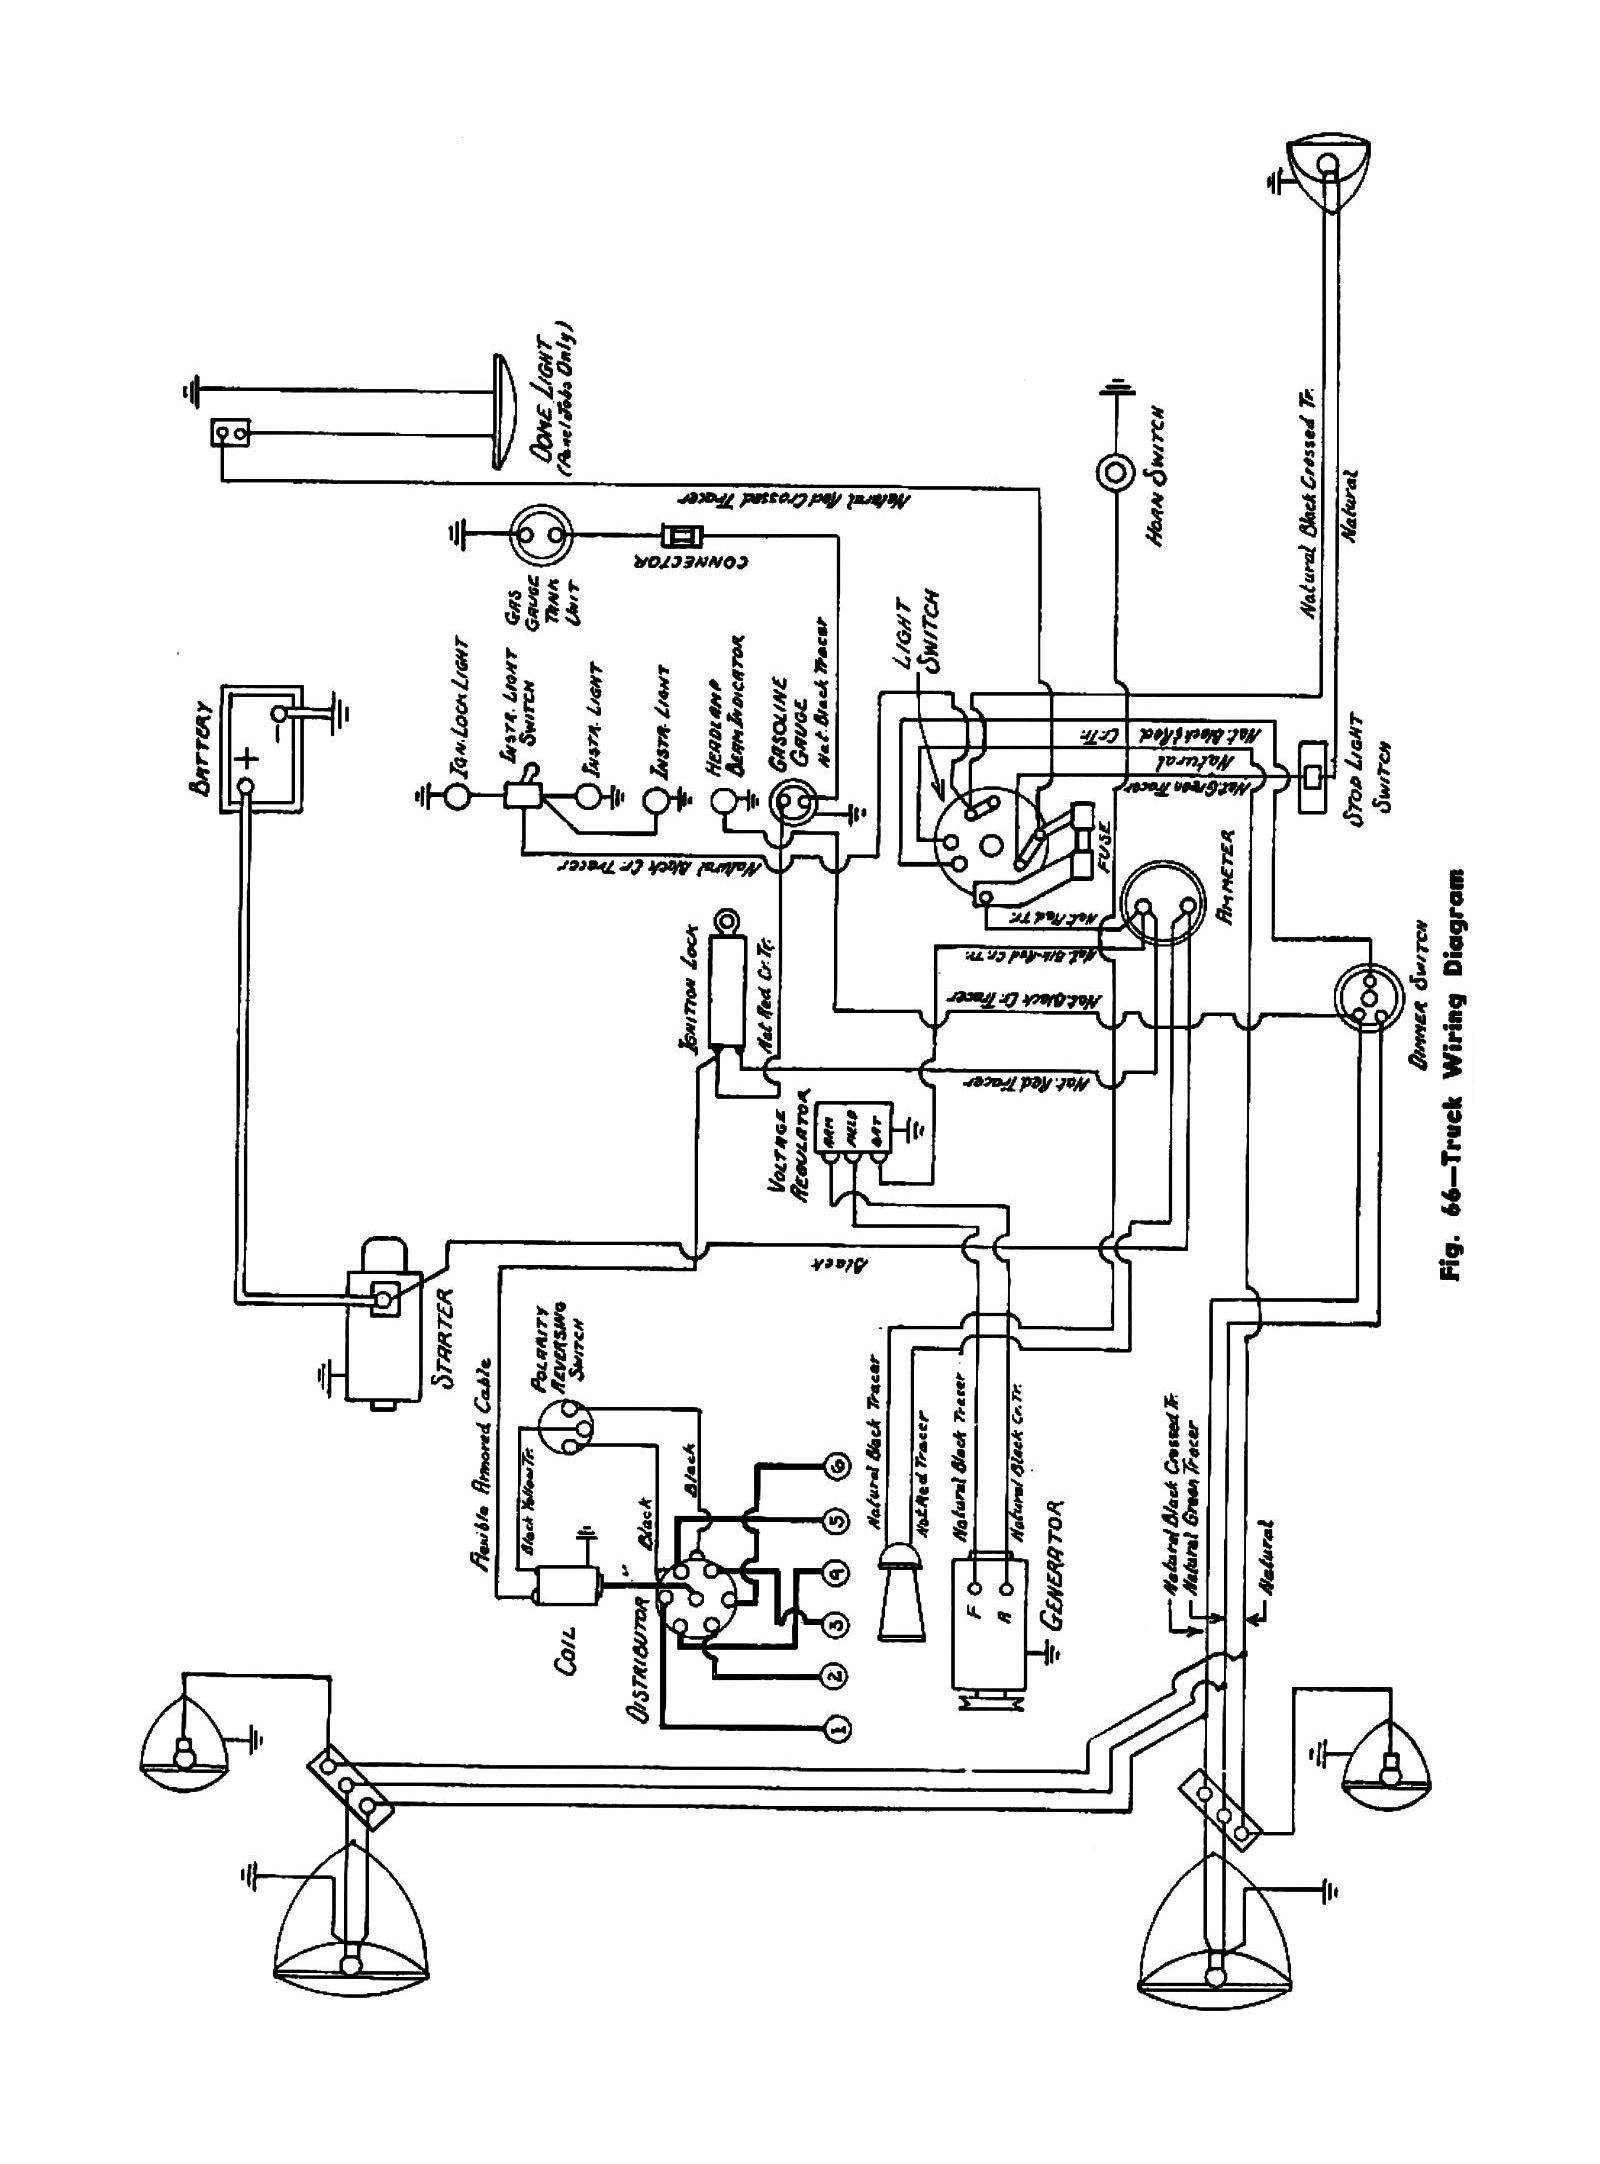 gm truck wiring diagrams gm wiring diagrams. Chevy Alternator ...